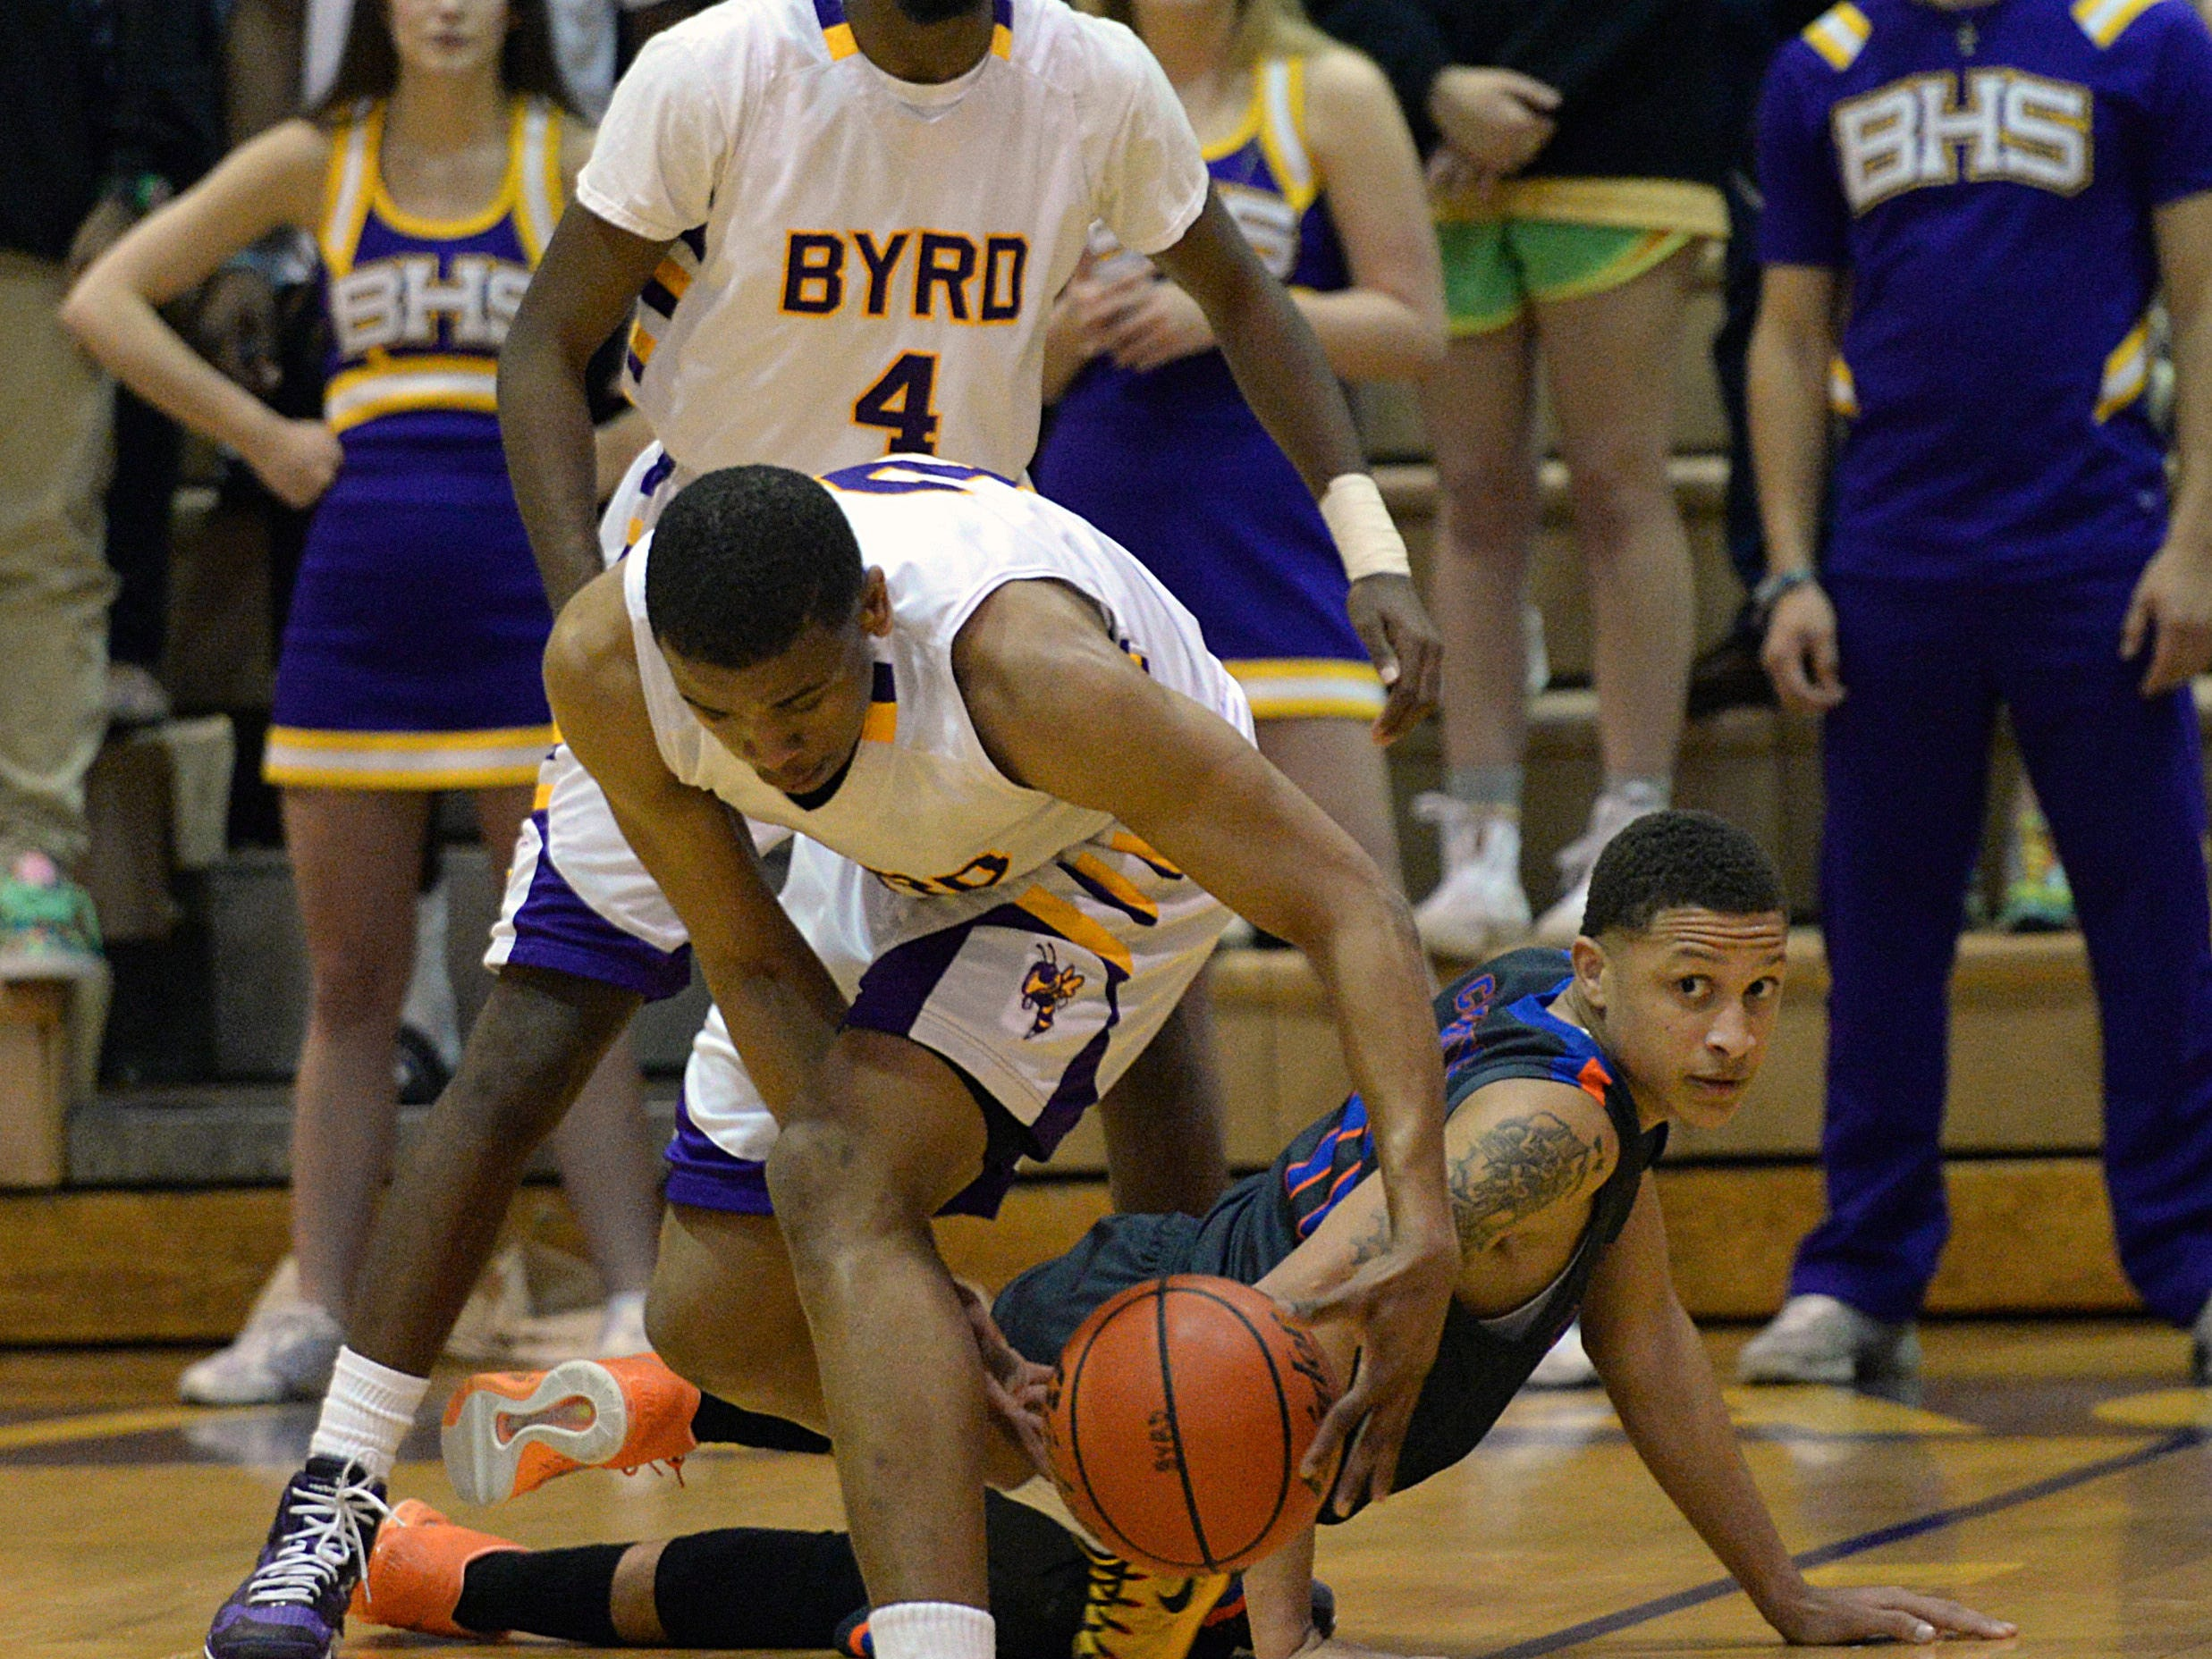 Byrd's Chad Lott steals the ball away from Southwood's Terion Bell in an 82-75 win.